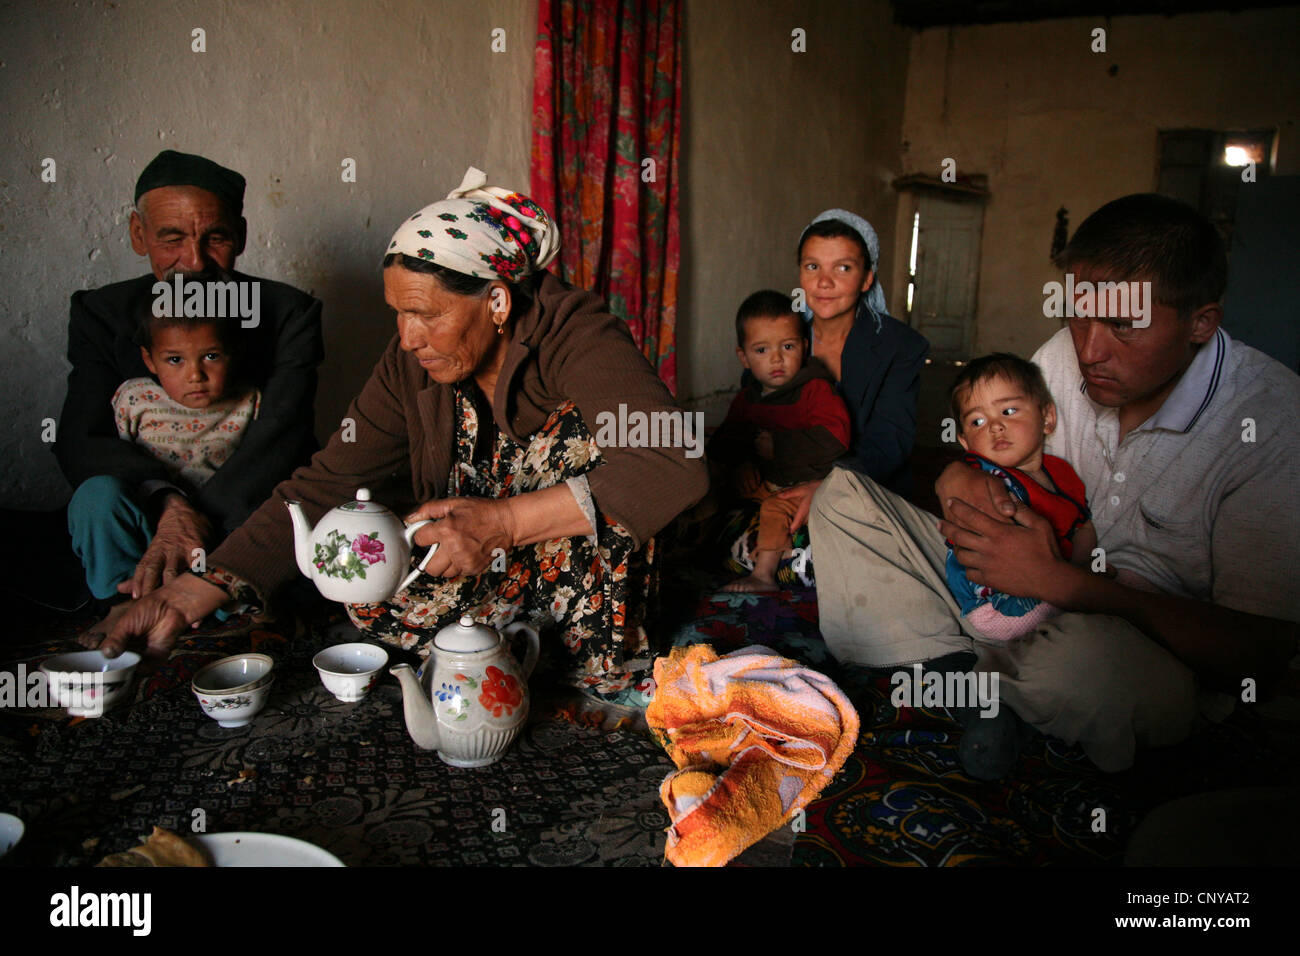 Tea drinking in a Kazakh family living in a kishlak beside the Uzbek-Turkmen border near Khiva, Uzbekistan. Stock Photo